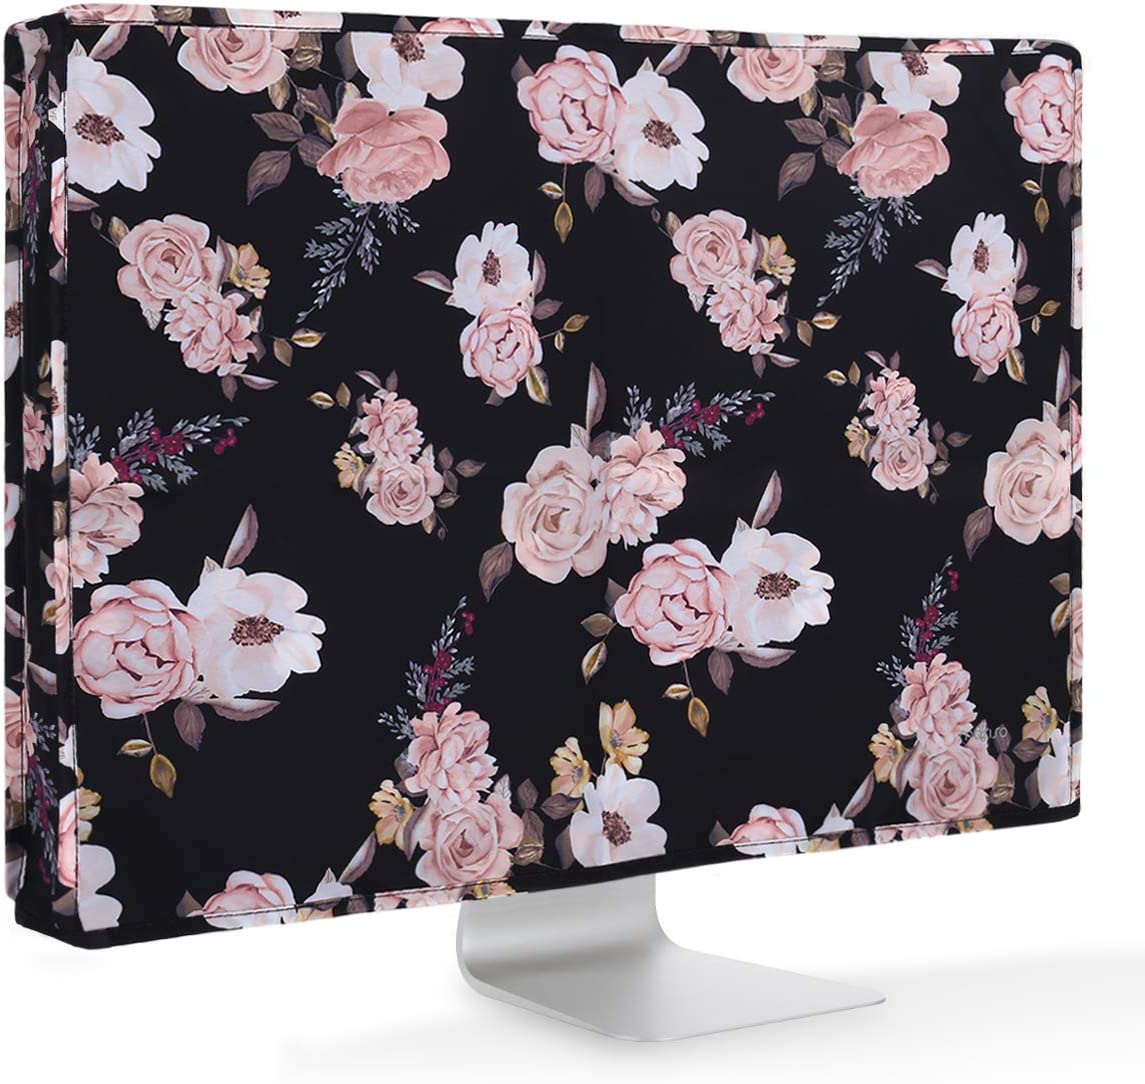 MOSISO Monitor Dust Cover 26, 27, 28, 29 inch Anti-Static LCD/LED/HD Panel Case Pattern Screen Display Protective Sleeve Compatible with 26-29 inch iMac, PC, Desktop Computer and TV,Black Base Peony